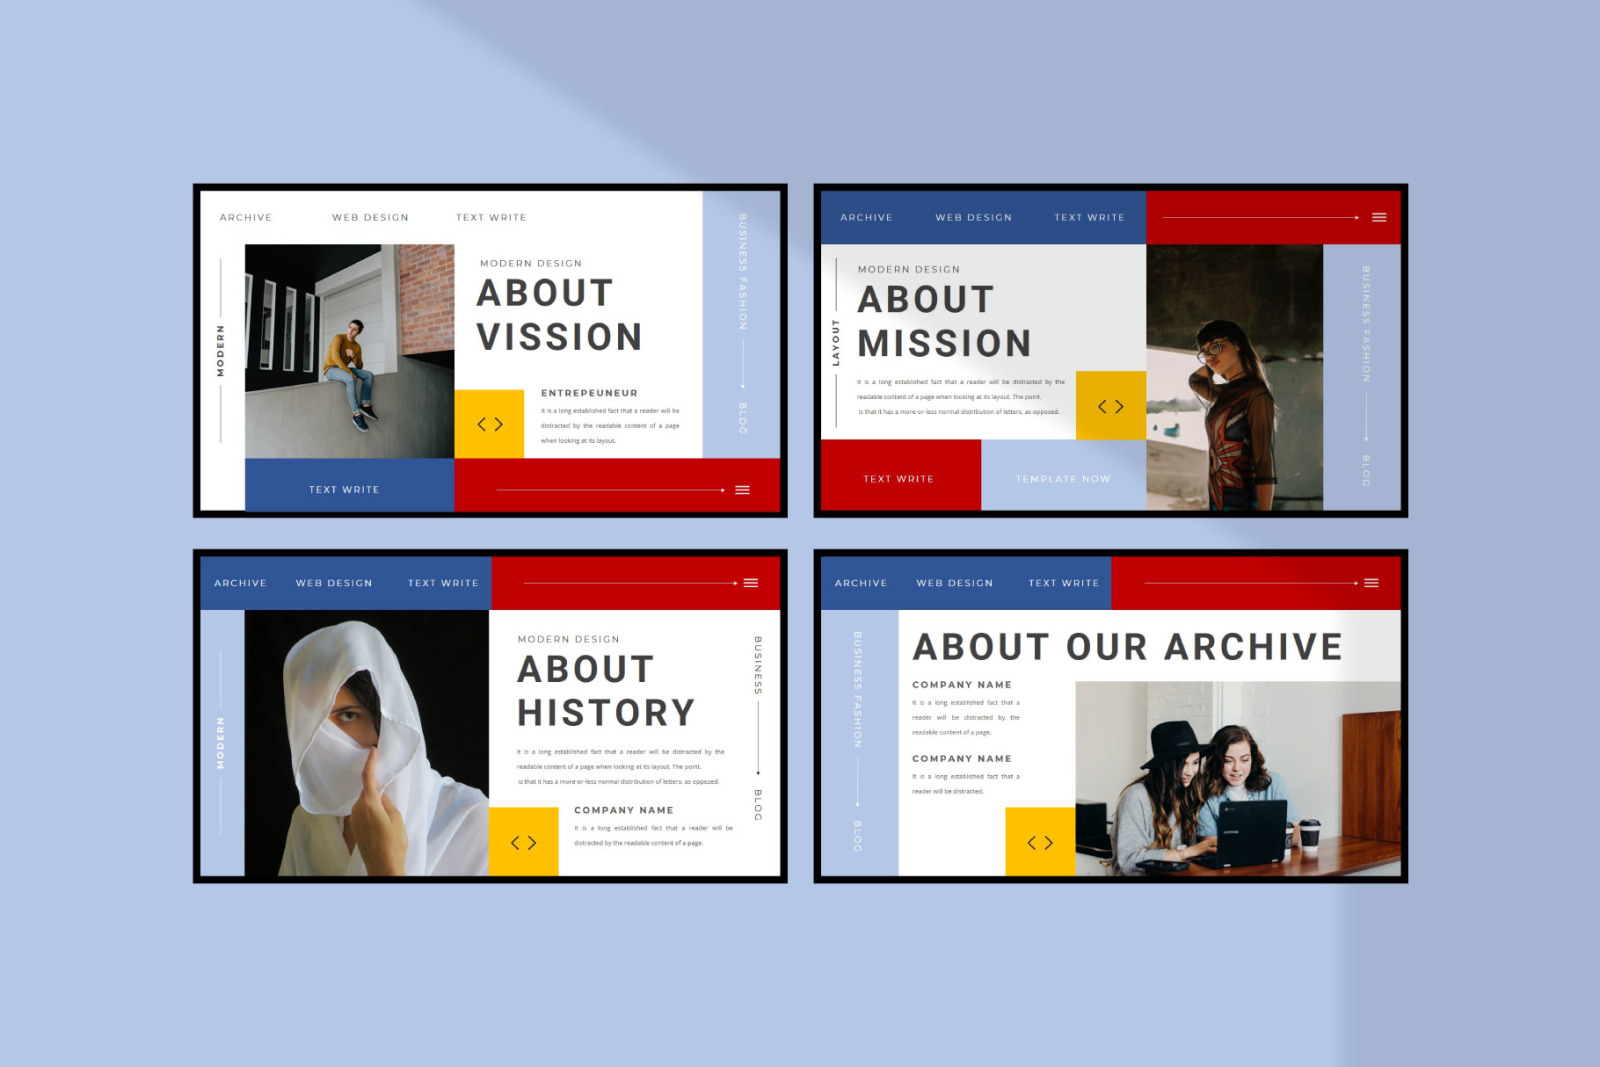 ARCHIVE Google Slides